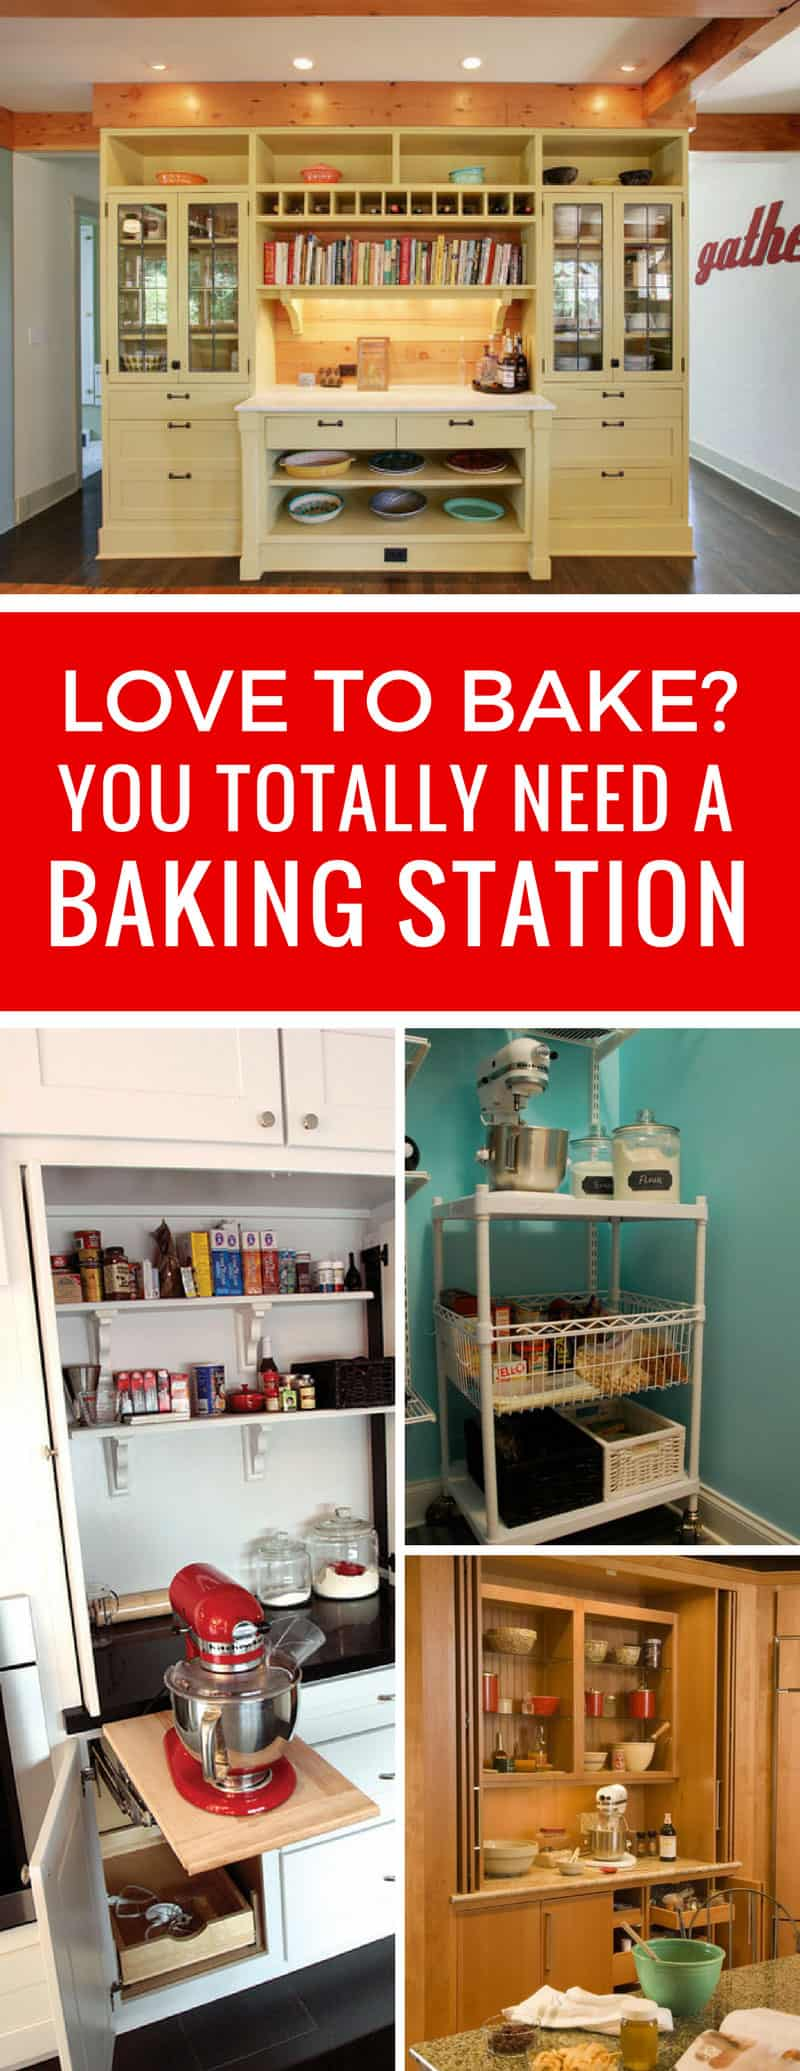 Oh yes I am drooling over these kitchen baking station ideas! Now to figure out where to put mine!